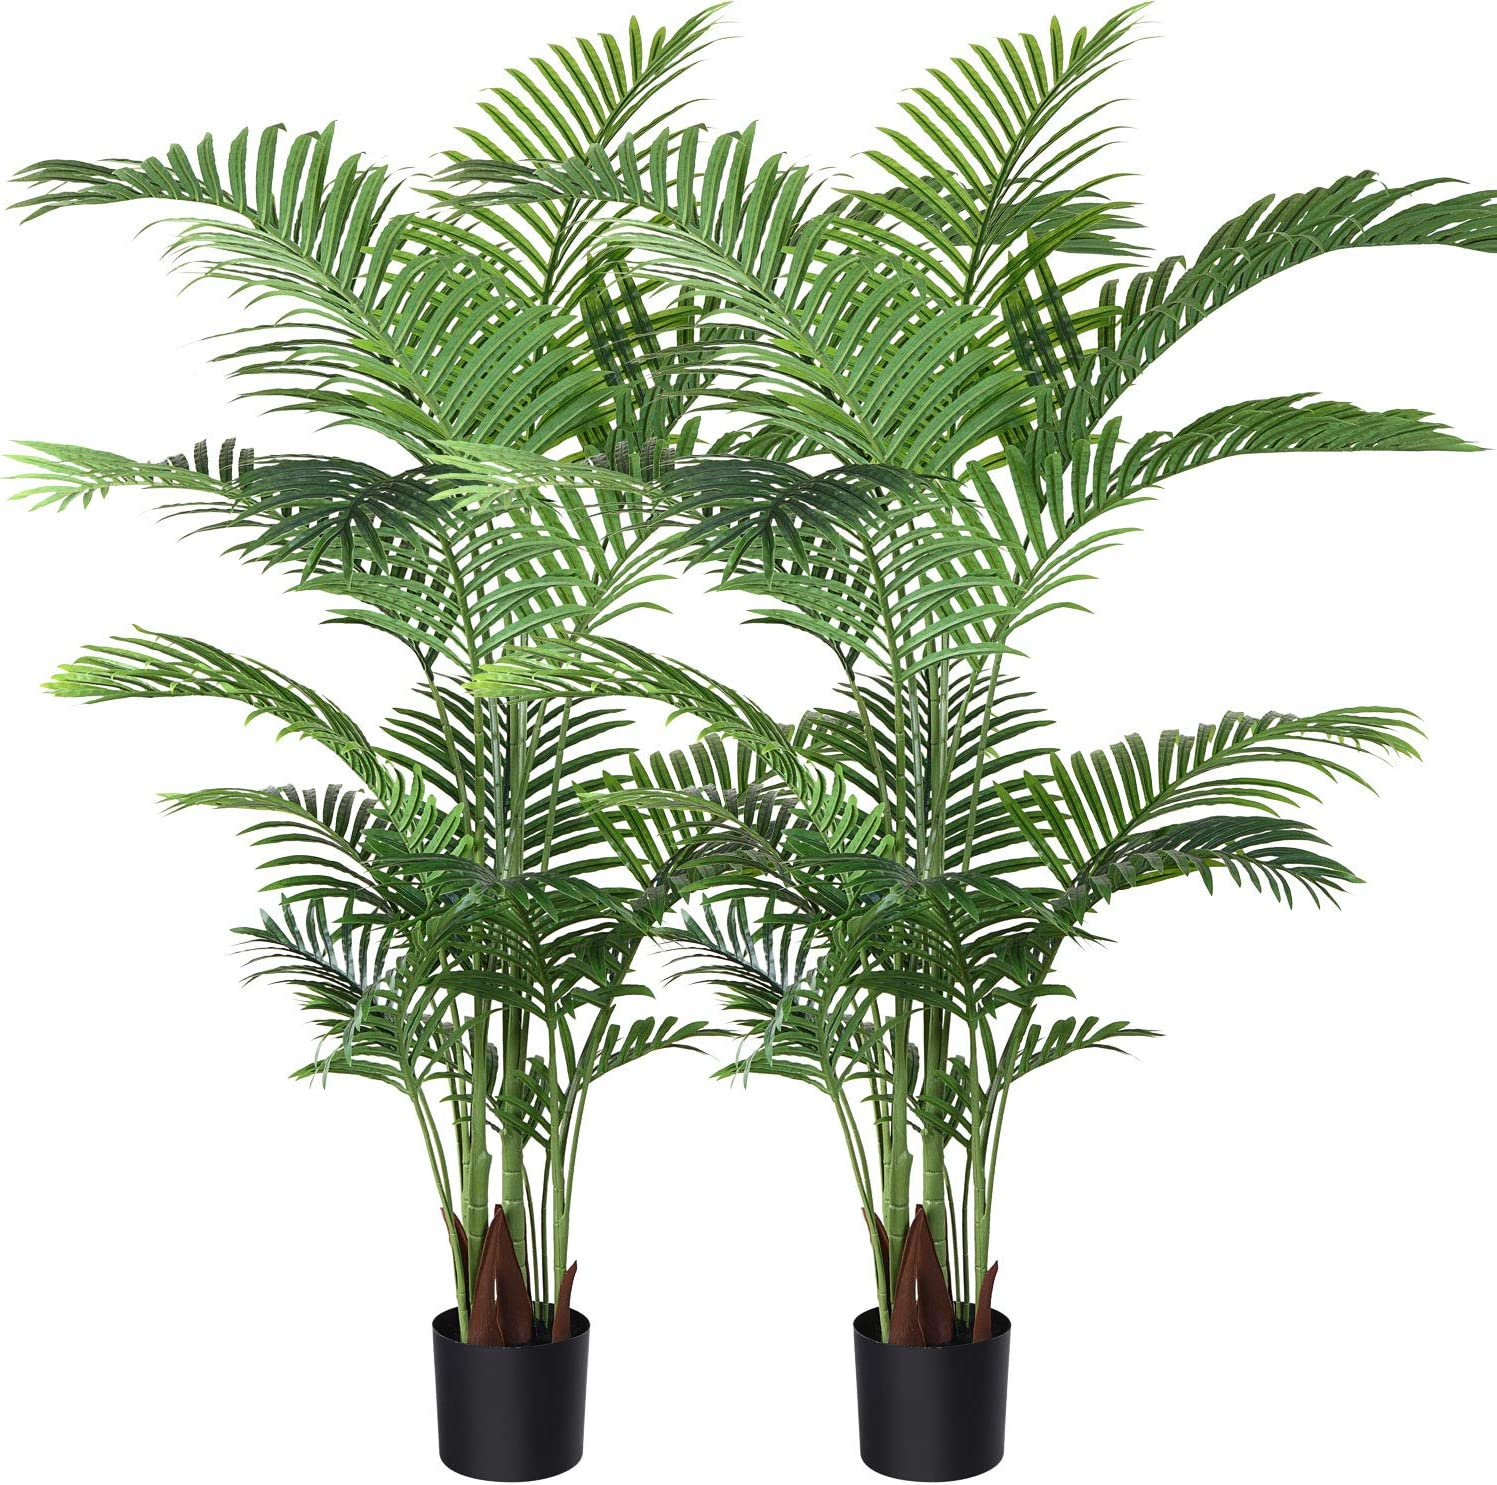 Fopamtri Artificial Areca Palm Plant 5 Feet Fake Palm Tree with 17 Trunks Faux Tree for Indoor Outdoor Modern Decoration Feaux Dypsis Lutescens Plants in Pot for Home Office,2 Pack